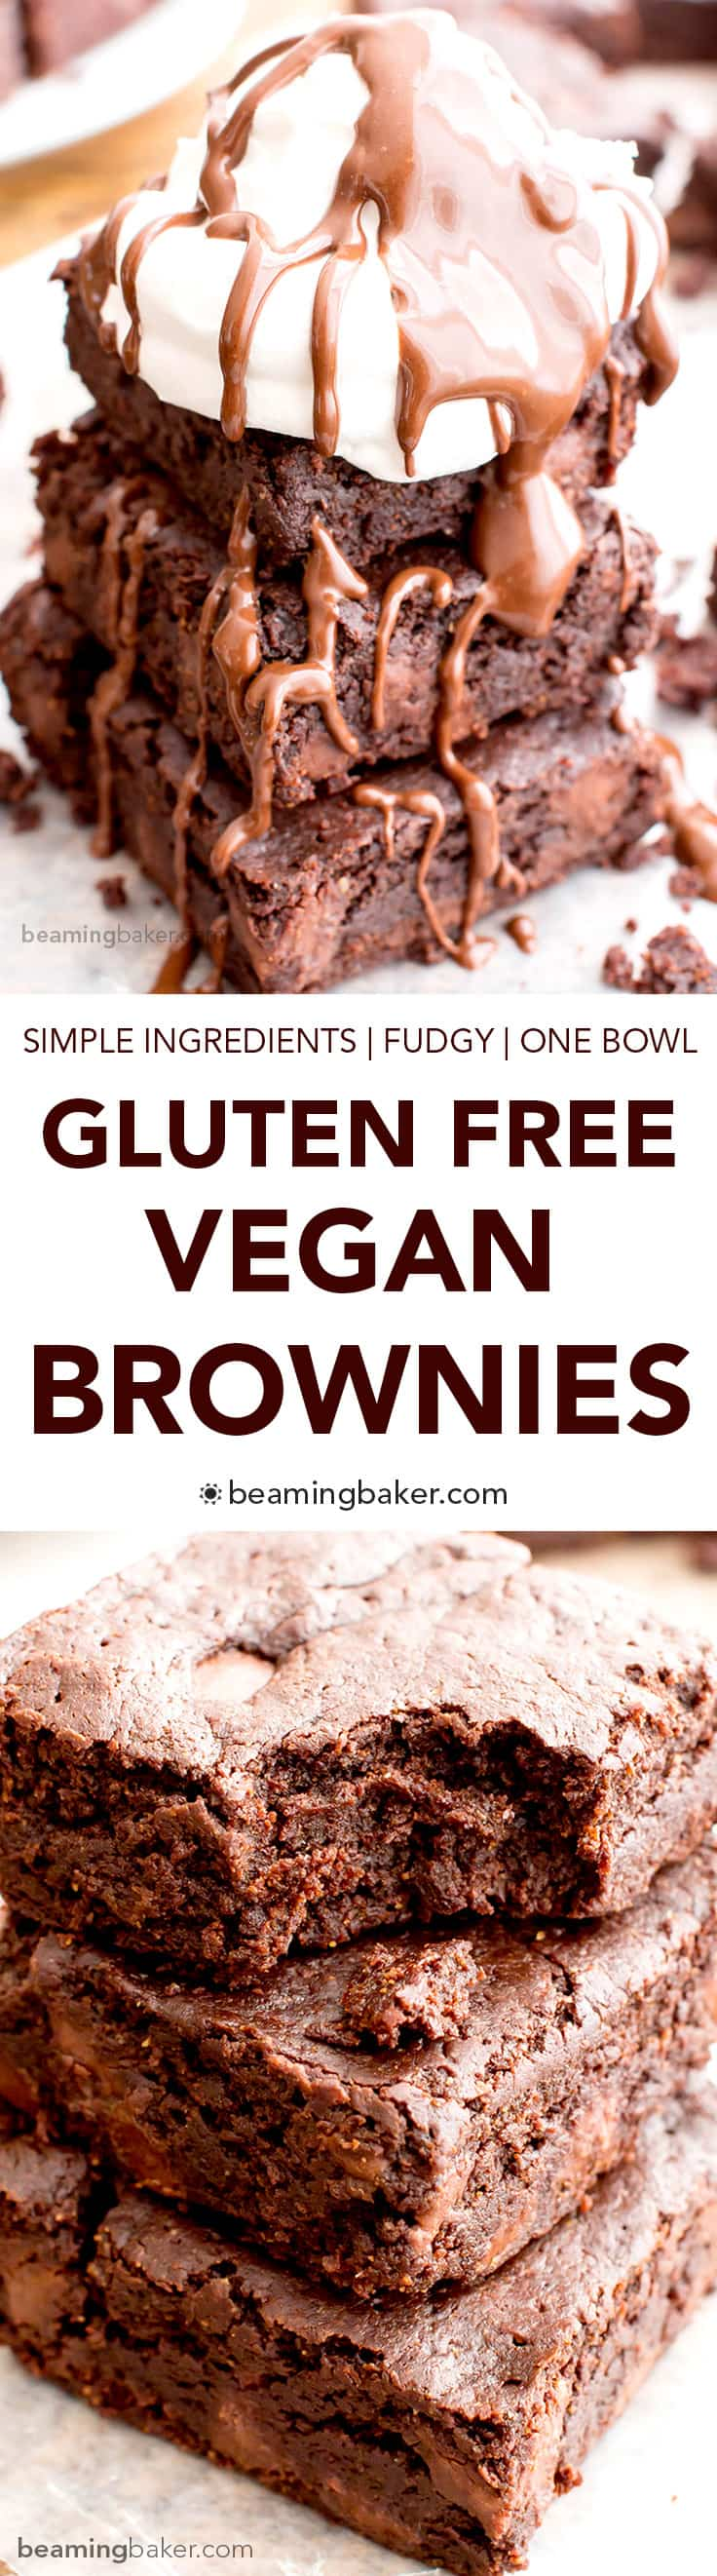 Gluten Free Vegan Brownies (V+GF): a one bowl recipe for the best gluten free vegan brownies made with simple, whole ingredients. #Vegan #GlutenFree #OneBowl | BeamingBaker.com